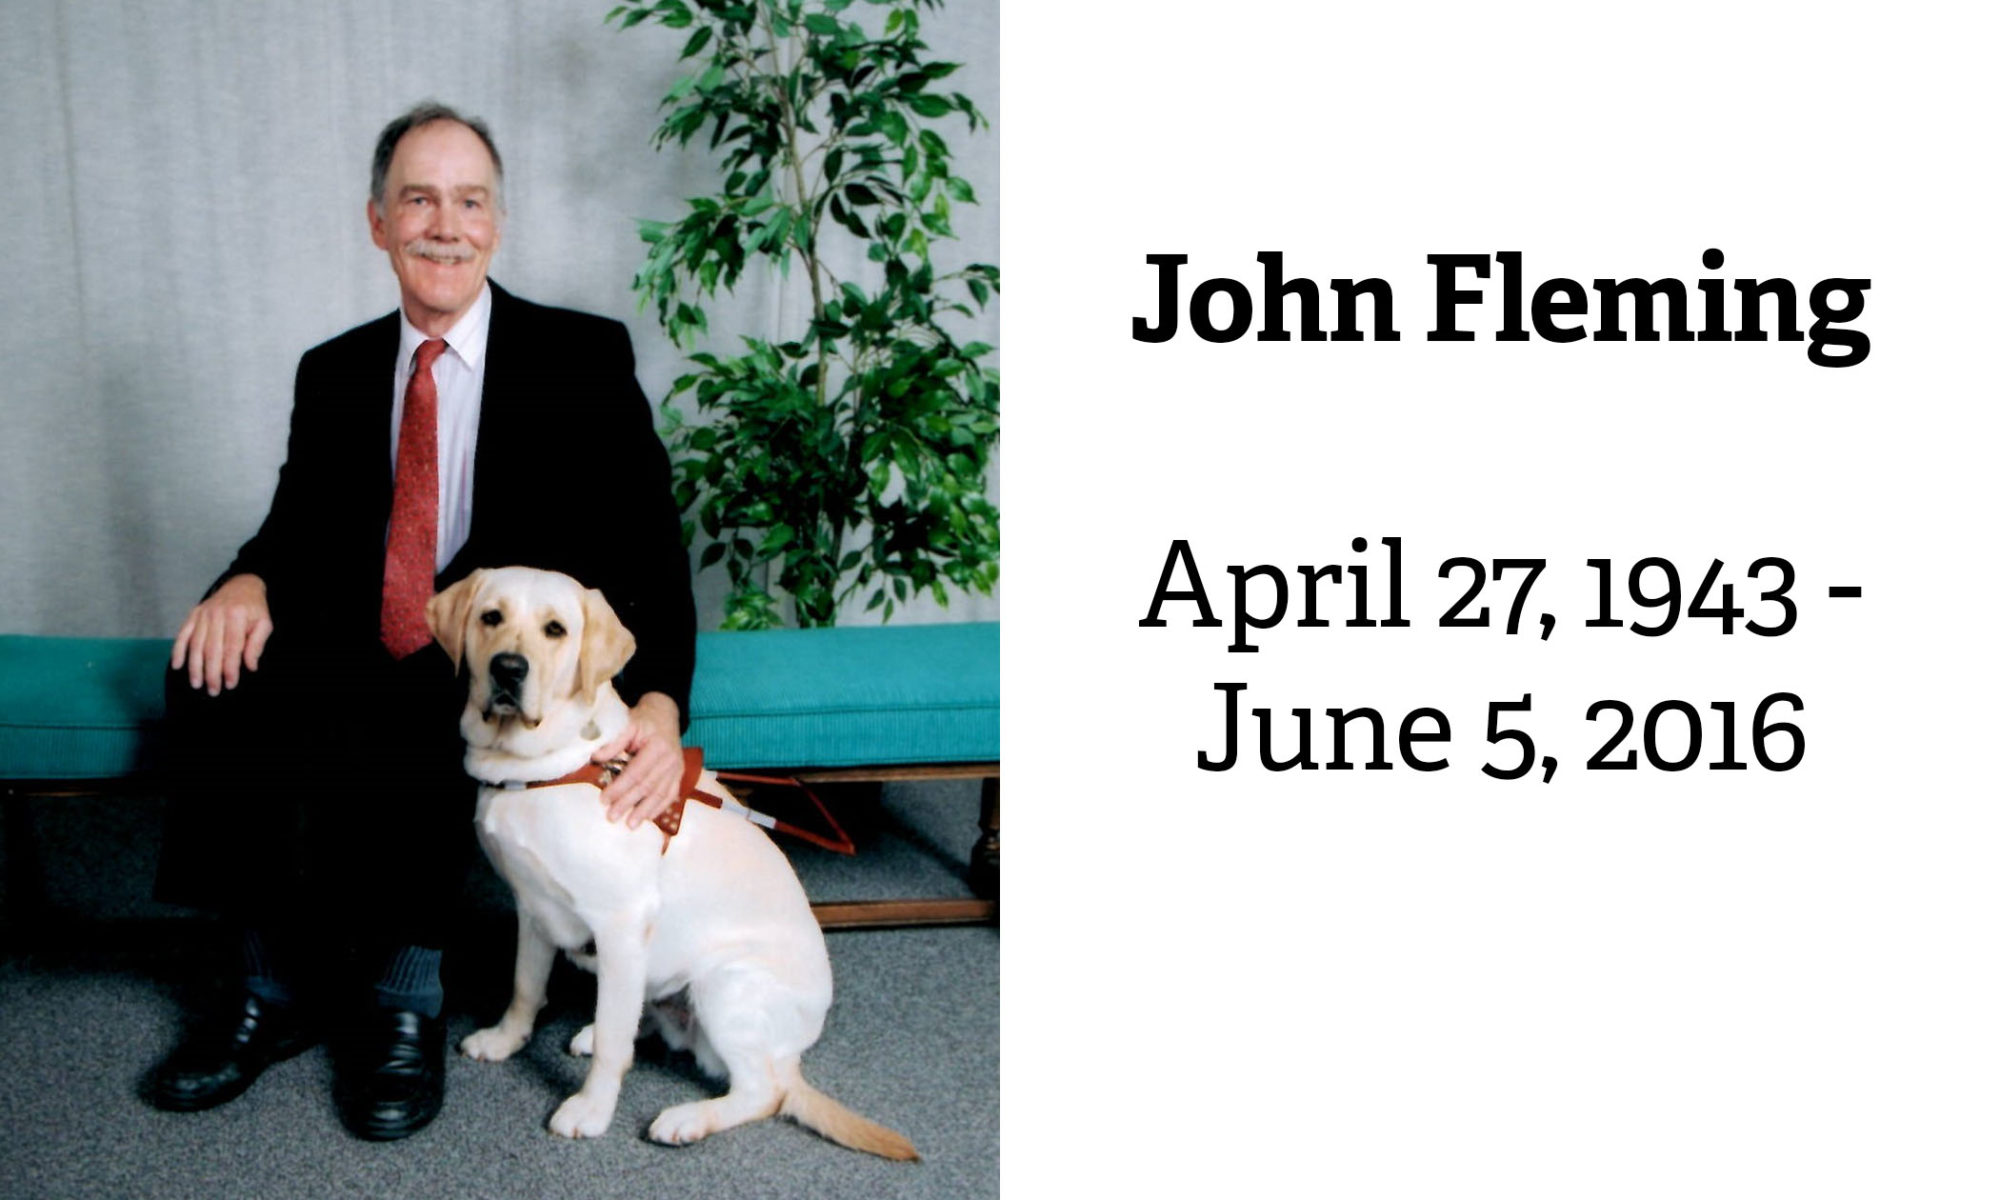 John Fleming seated next to his guide dog Tia. The caption says John Fleming, April 27, 1943 - June 5, 2016.